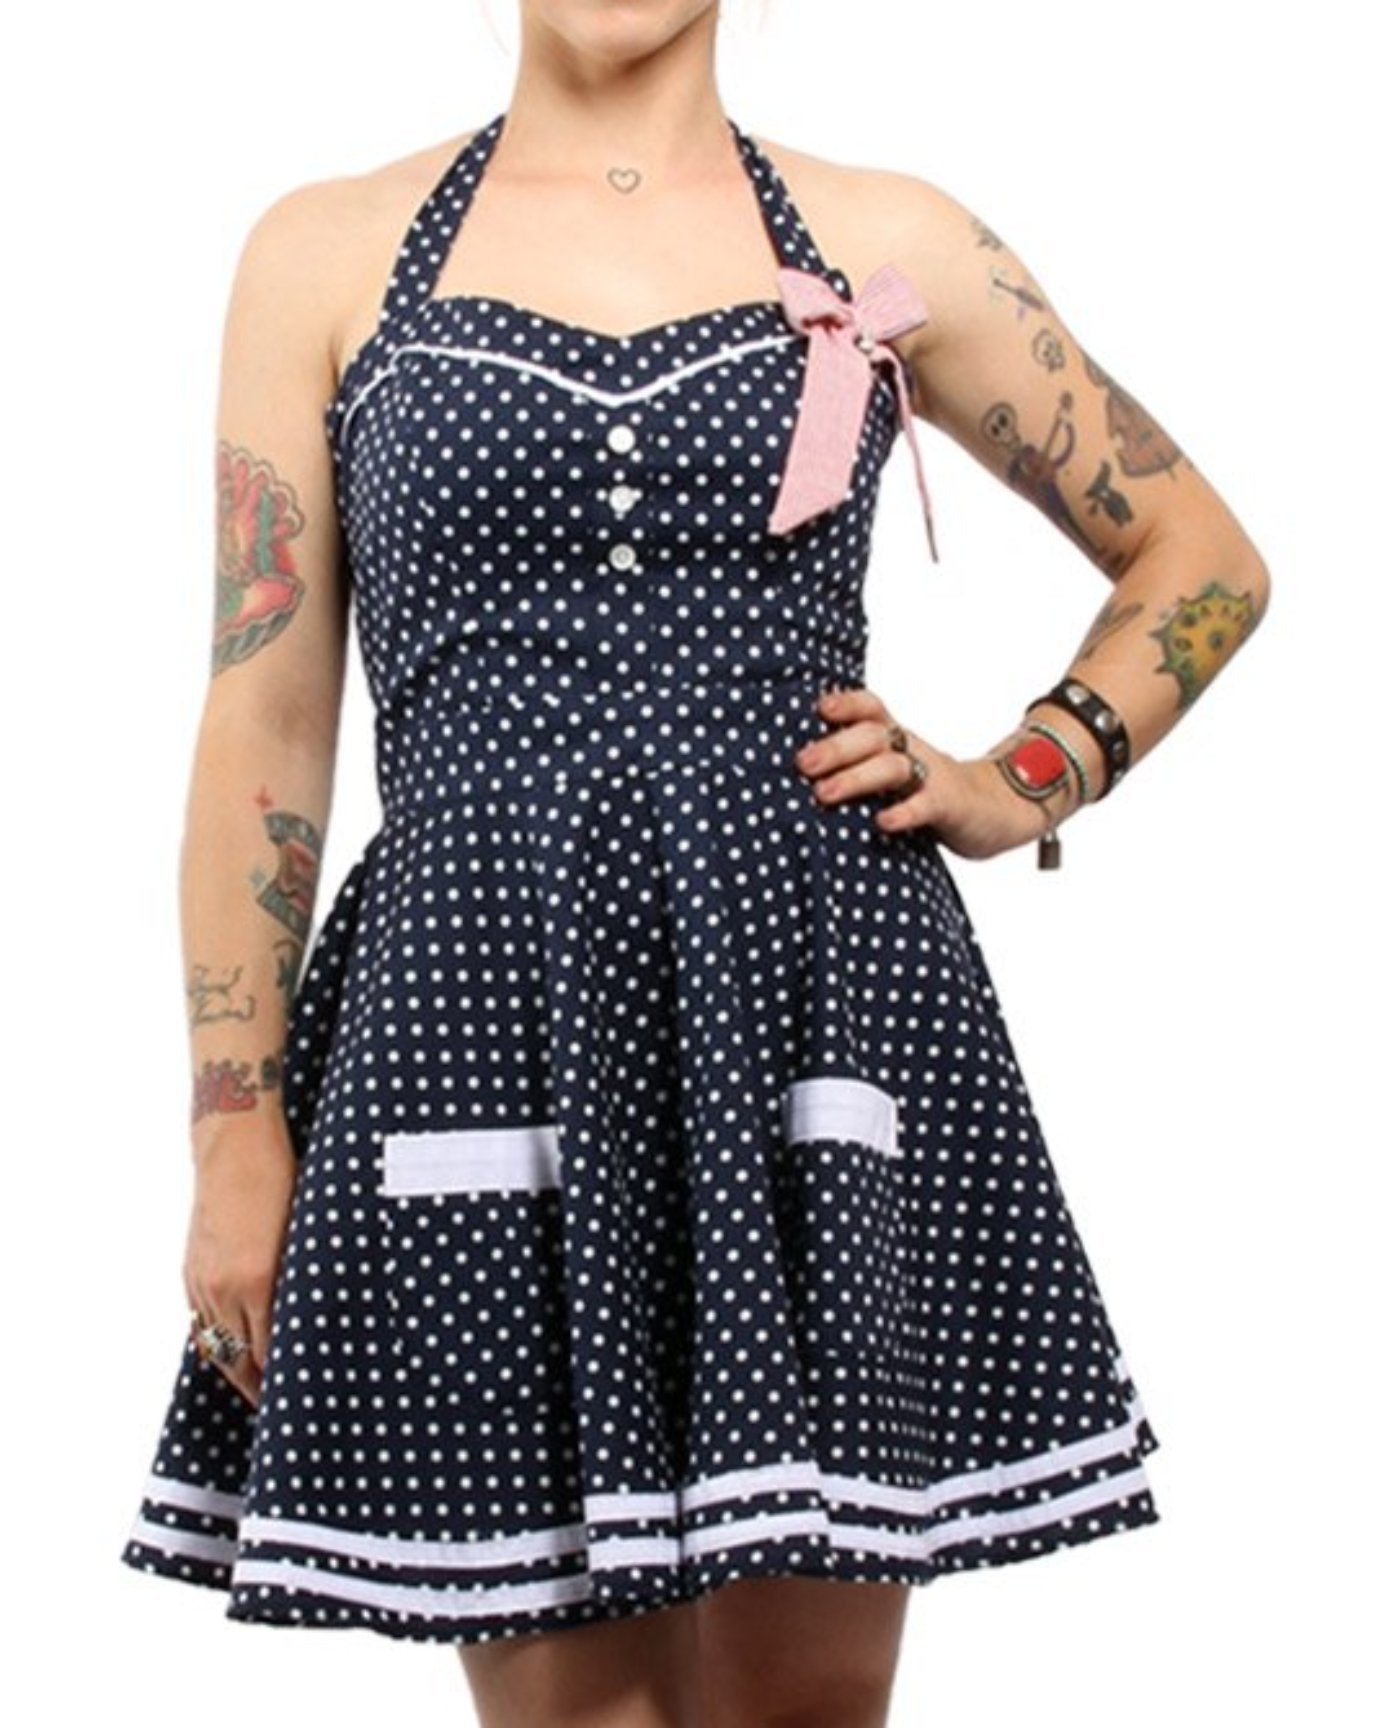 The DEVIL IN DEEP BLUE SEA Womens Cotton Polka Dot Sailor Halter Swing Dress